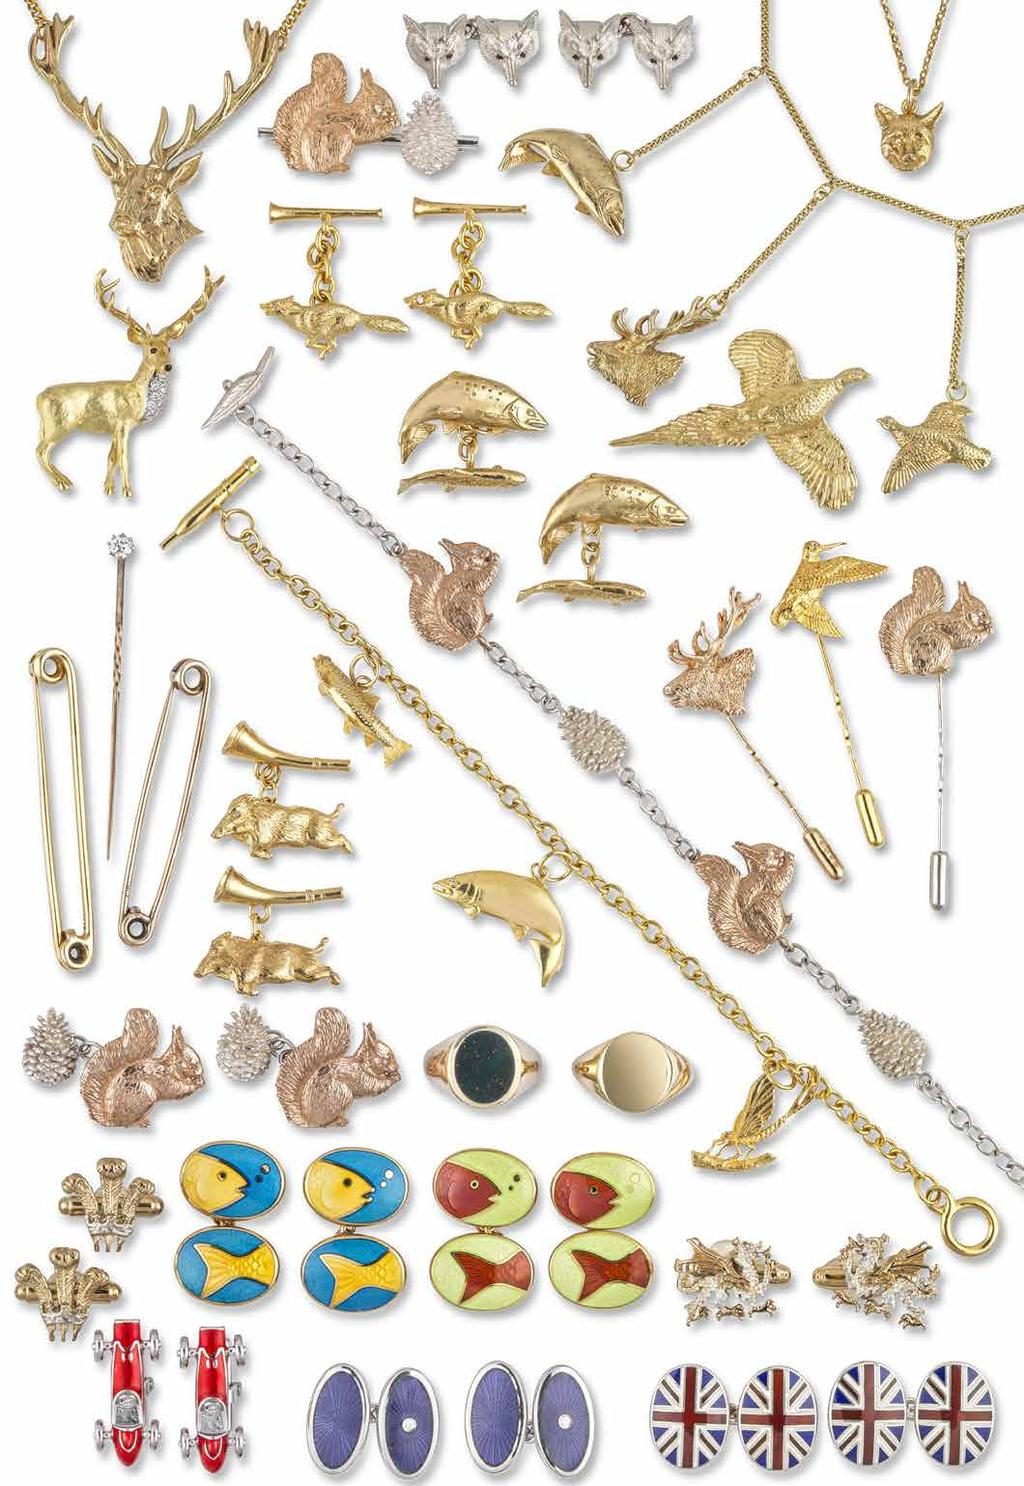 Nos 132 159 GREAT BRITISH WILDLIFE & GENTS COLLECTIONS JEWELLERY SHOWN ACTUAL SIZE 133 132 135 136 134 137 138 140 139